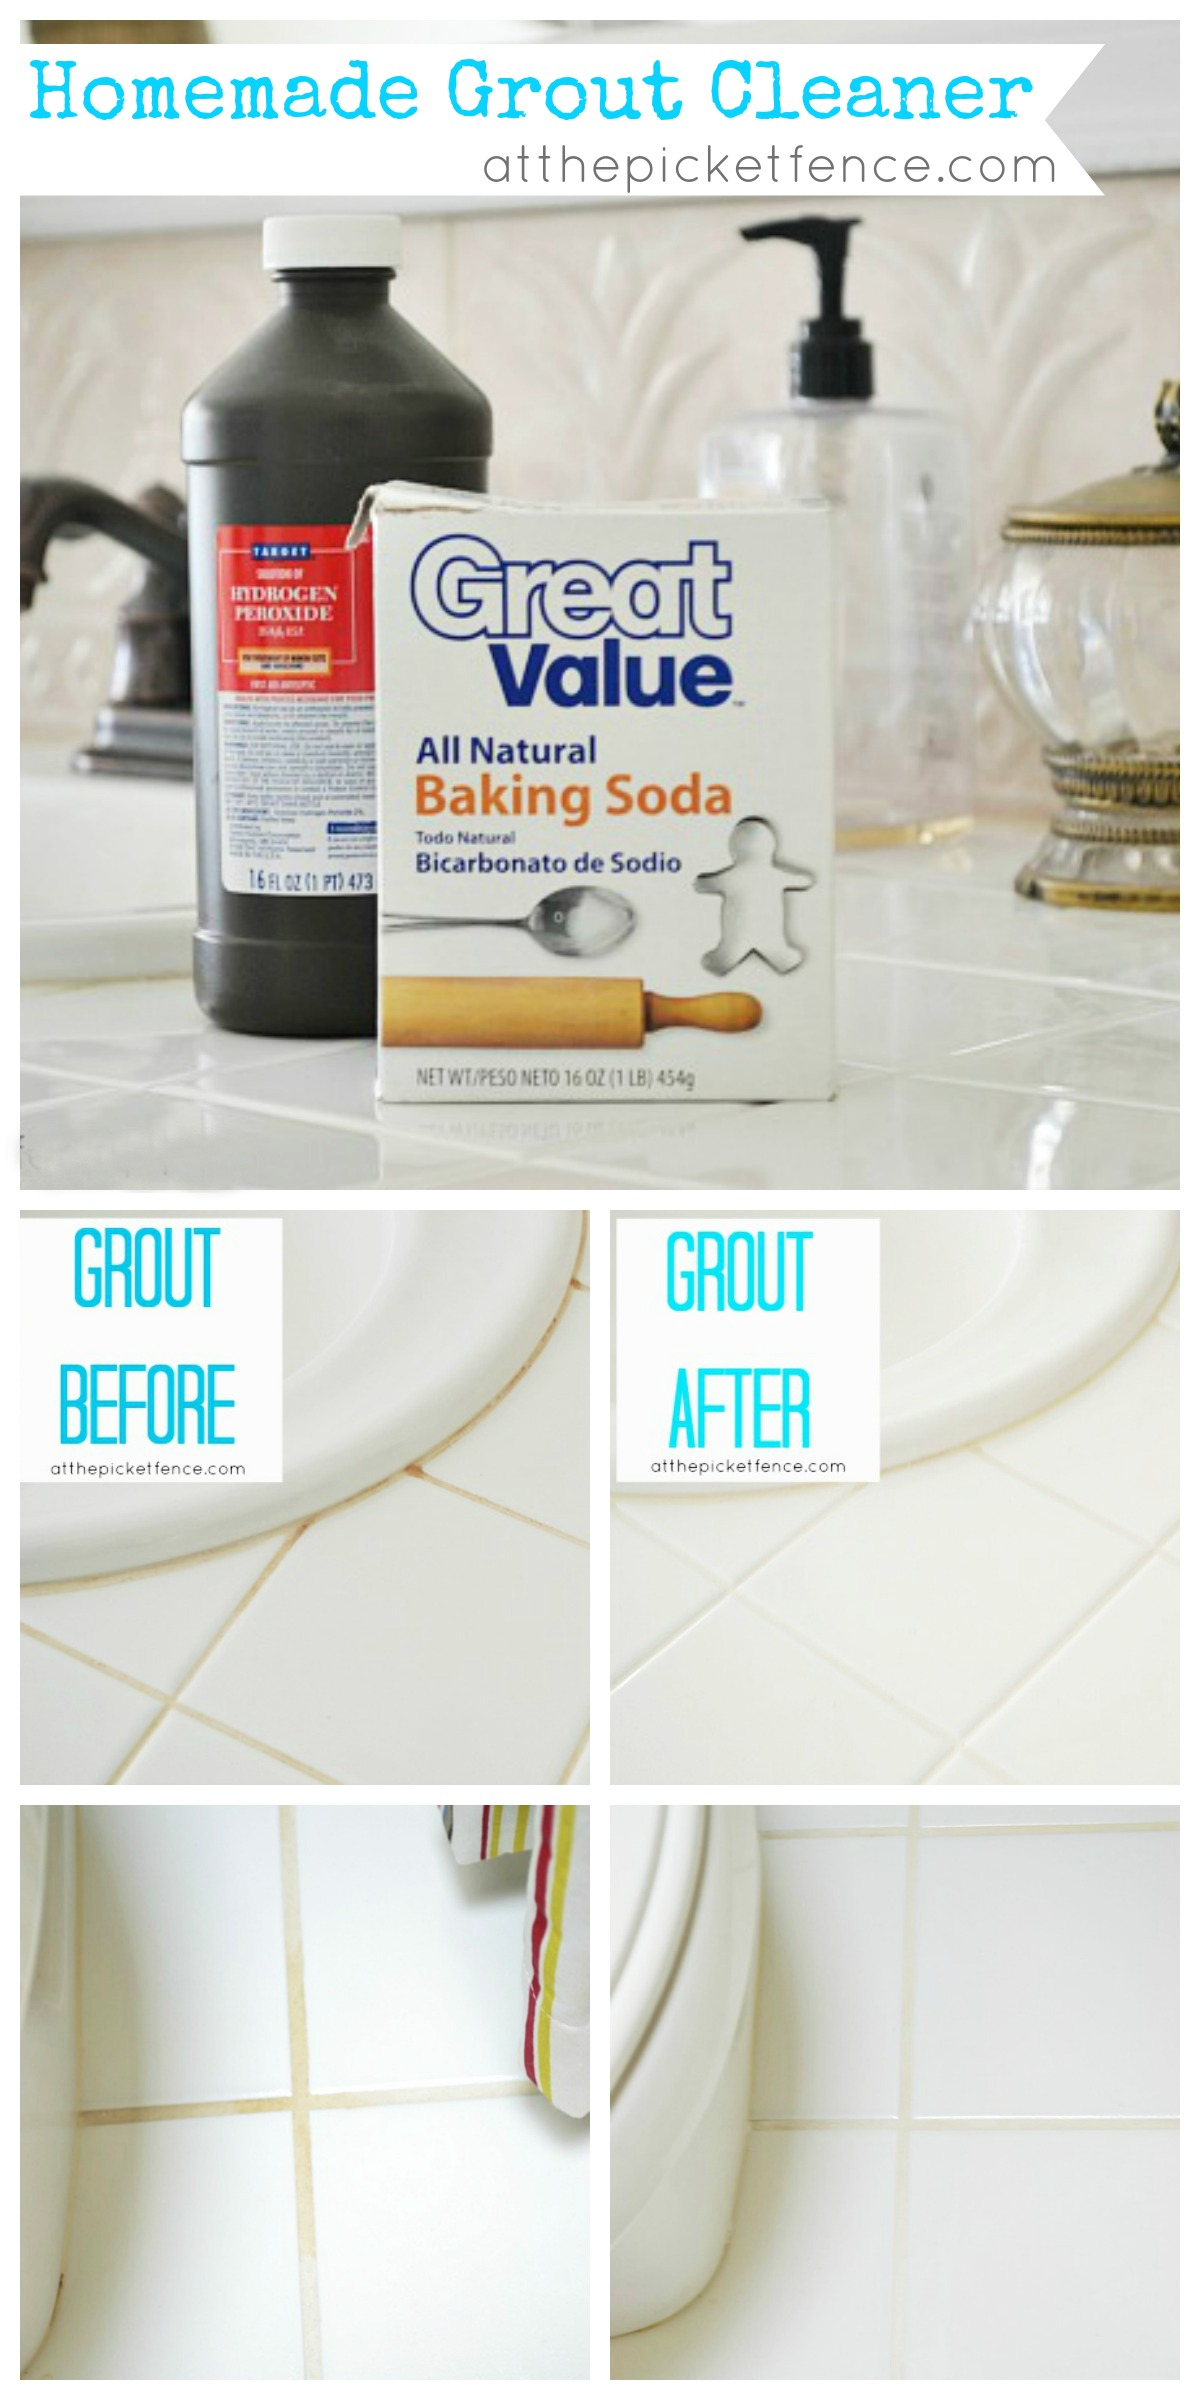 homemade grout cleaner image via